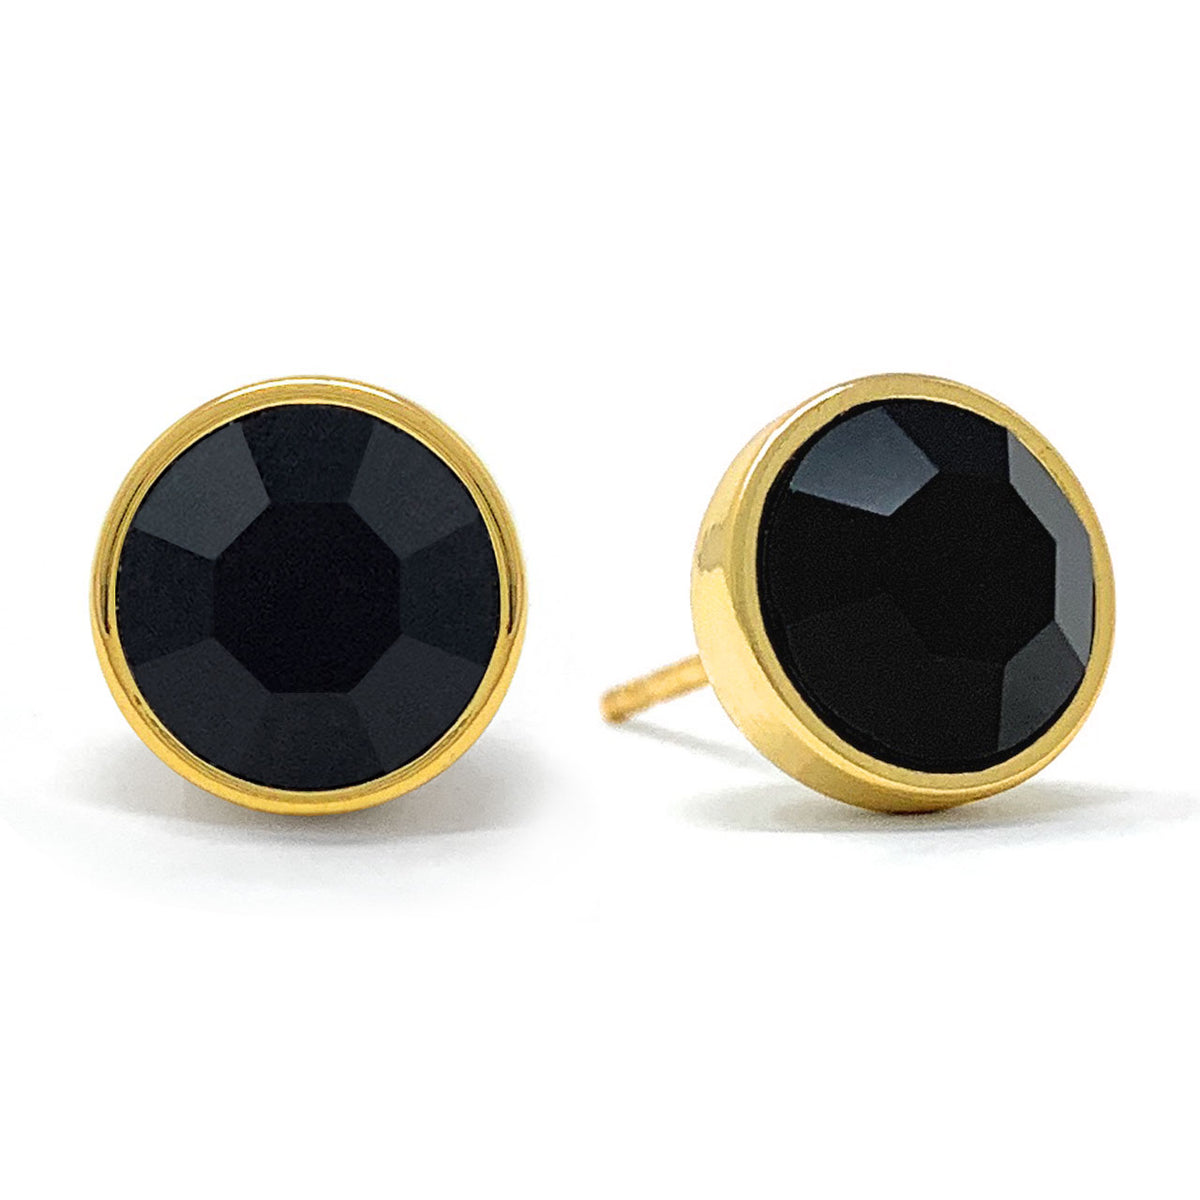 Harley Stud Earrings with Black Jet Round Crystals from Swarovski Gold Plated - Ed Heart